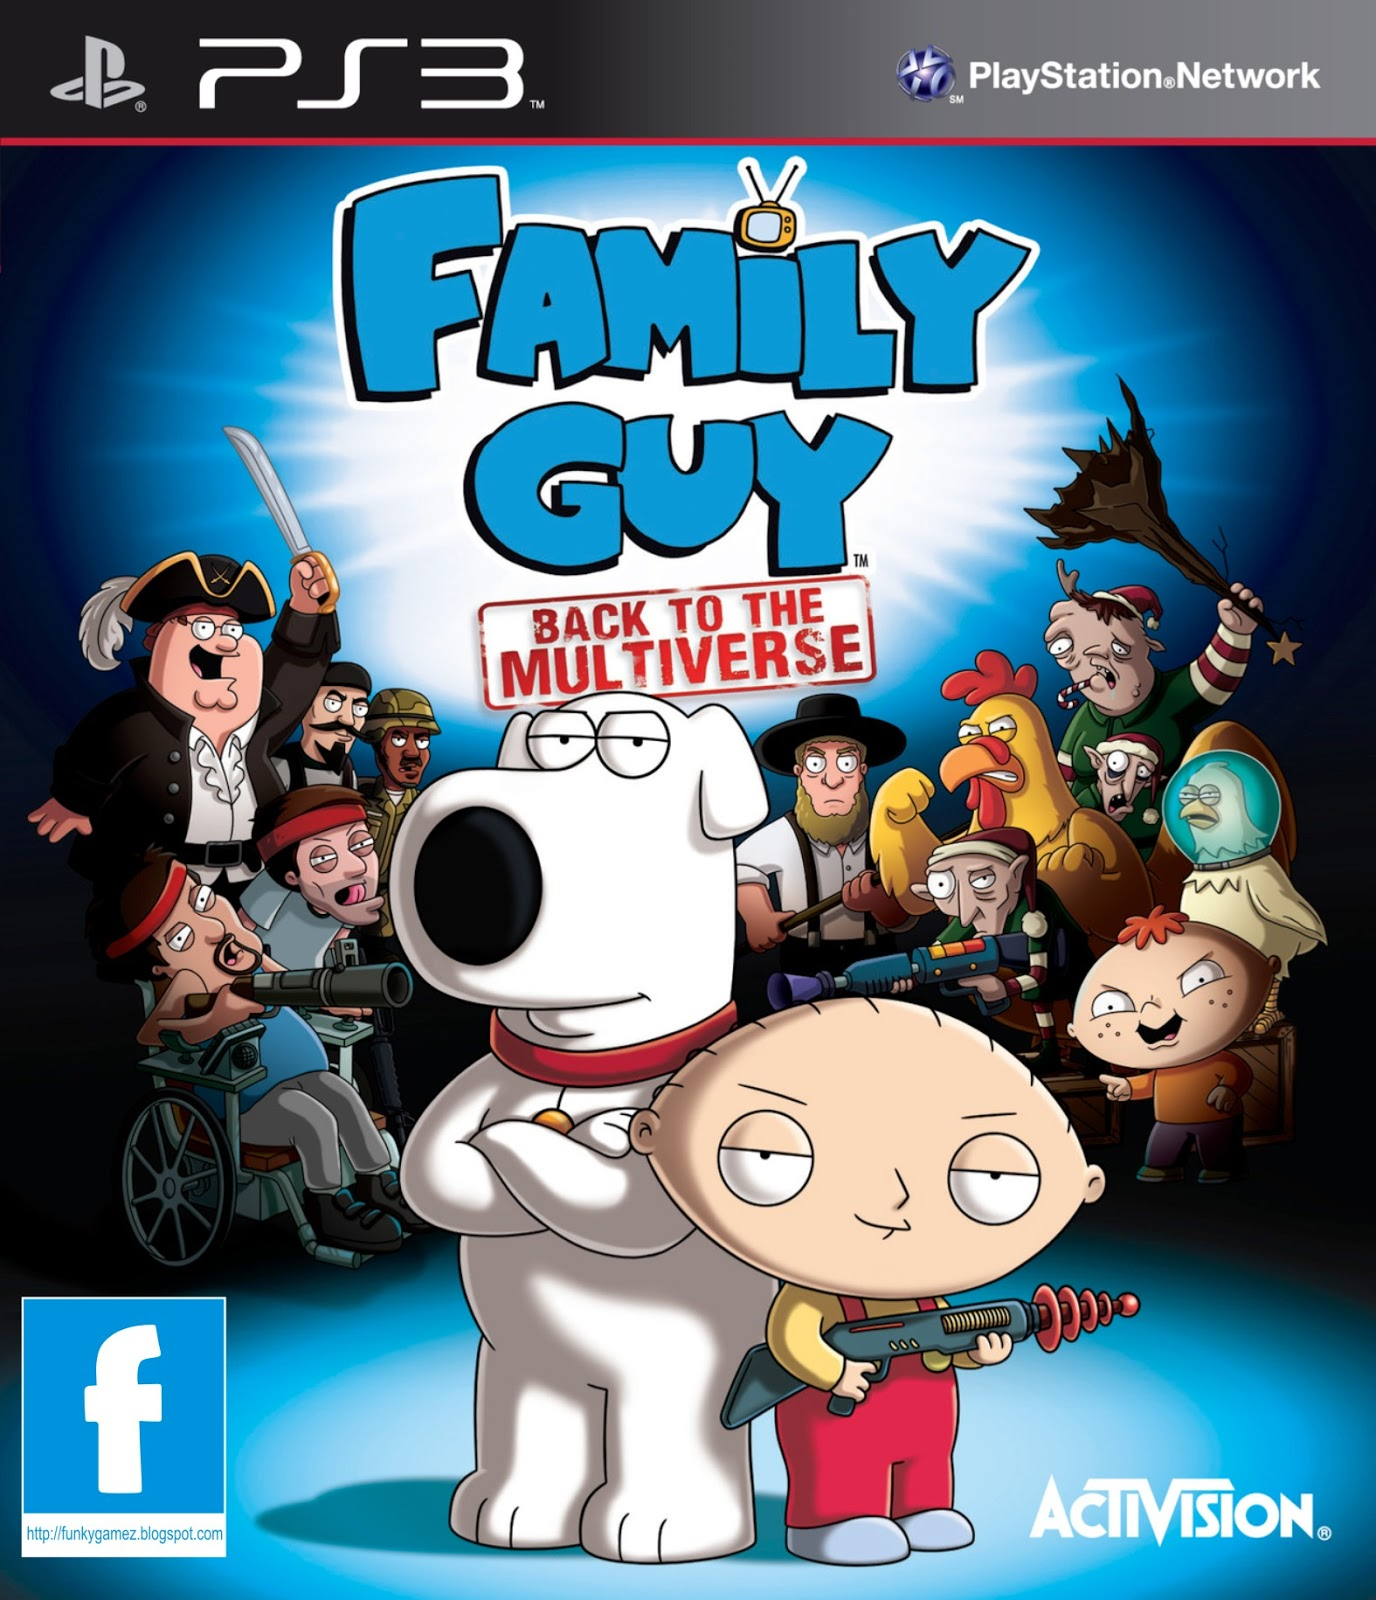 Family Games For Ps3 : Family guy back to the multiverse cfw ps iso games